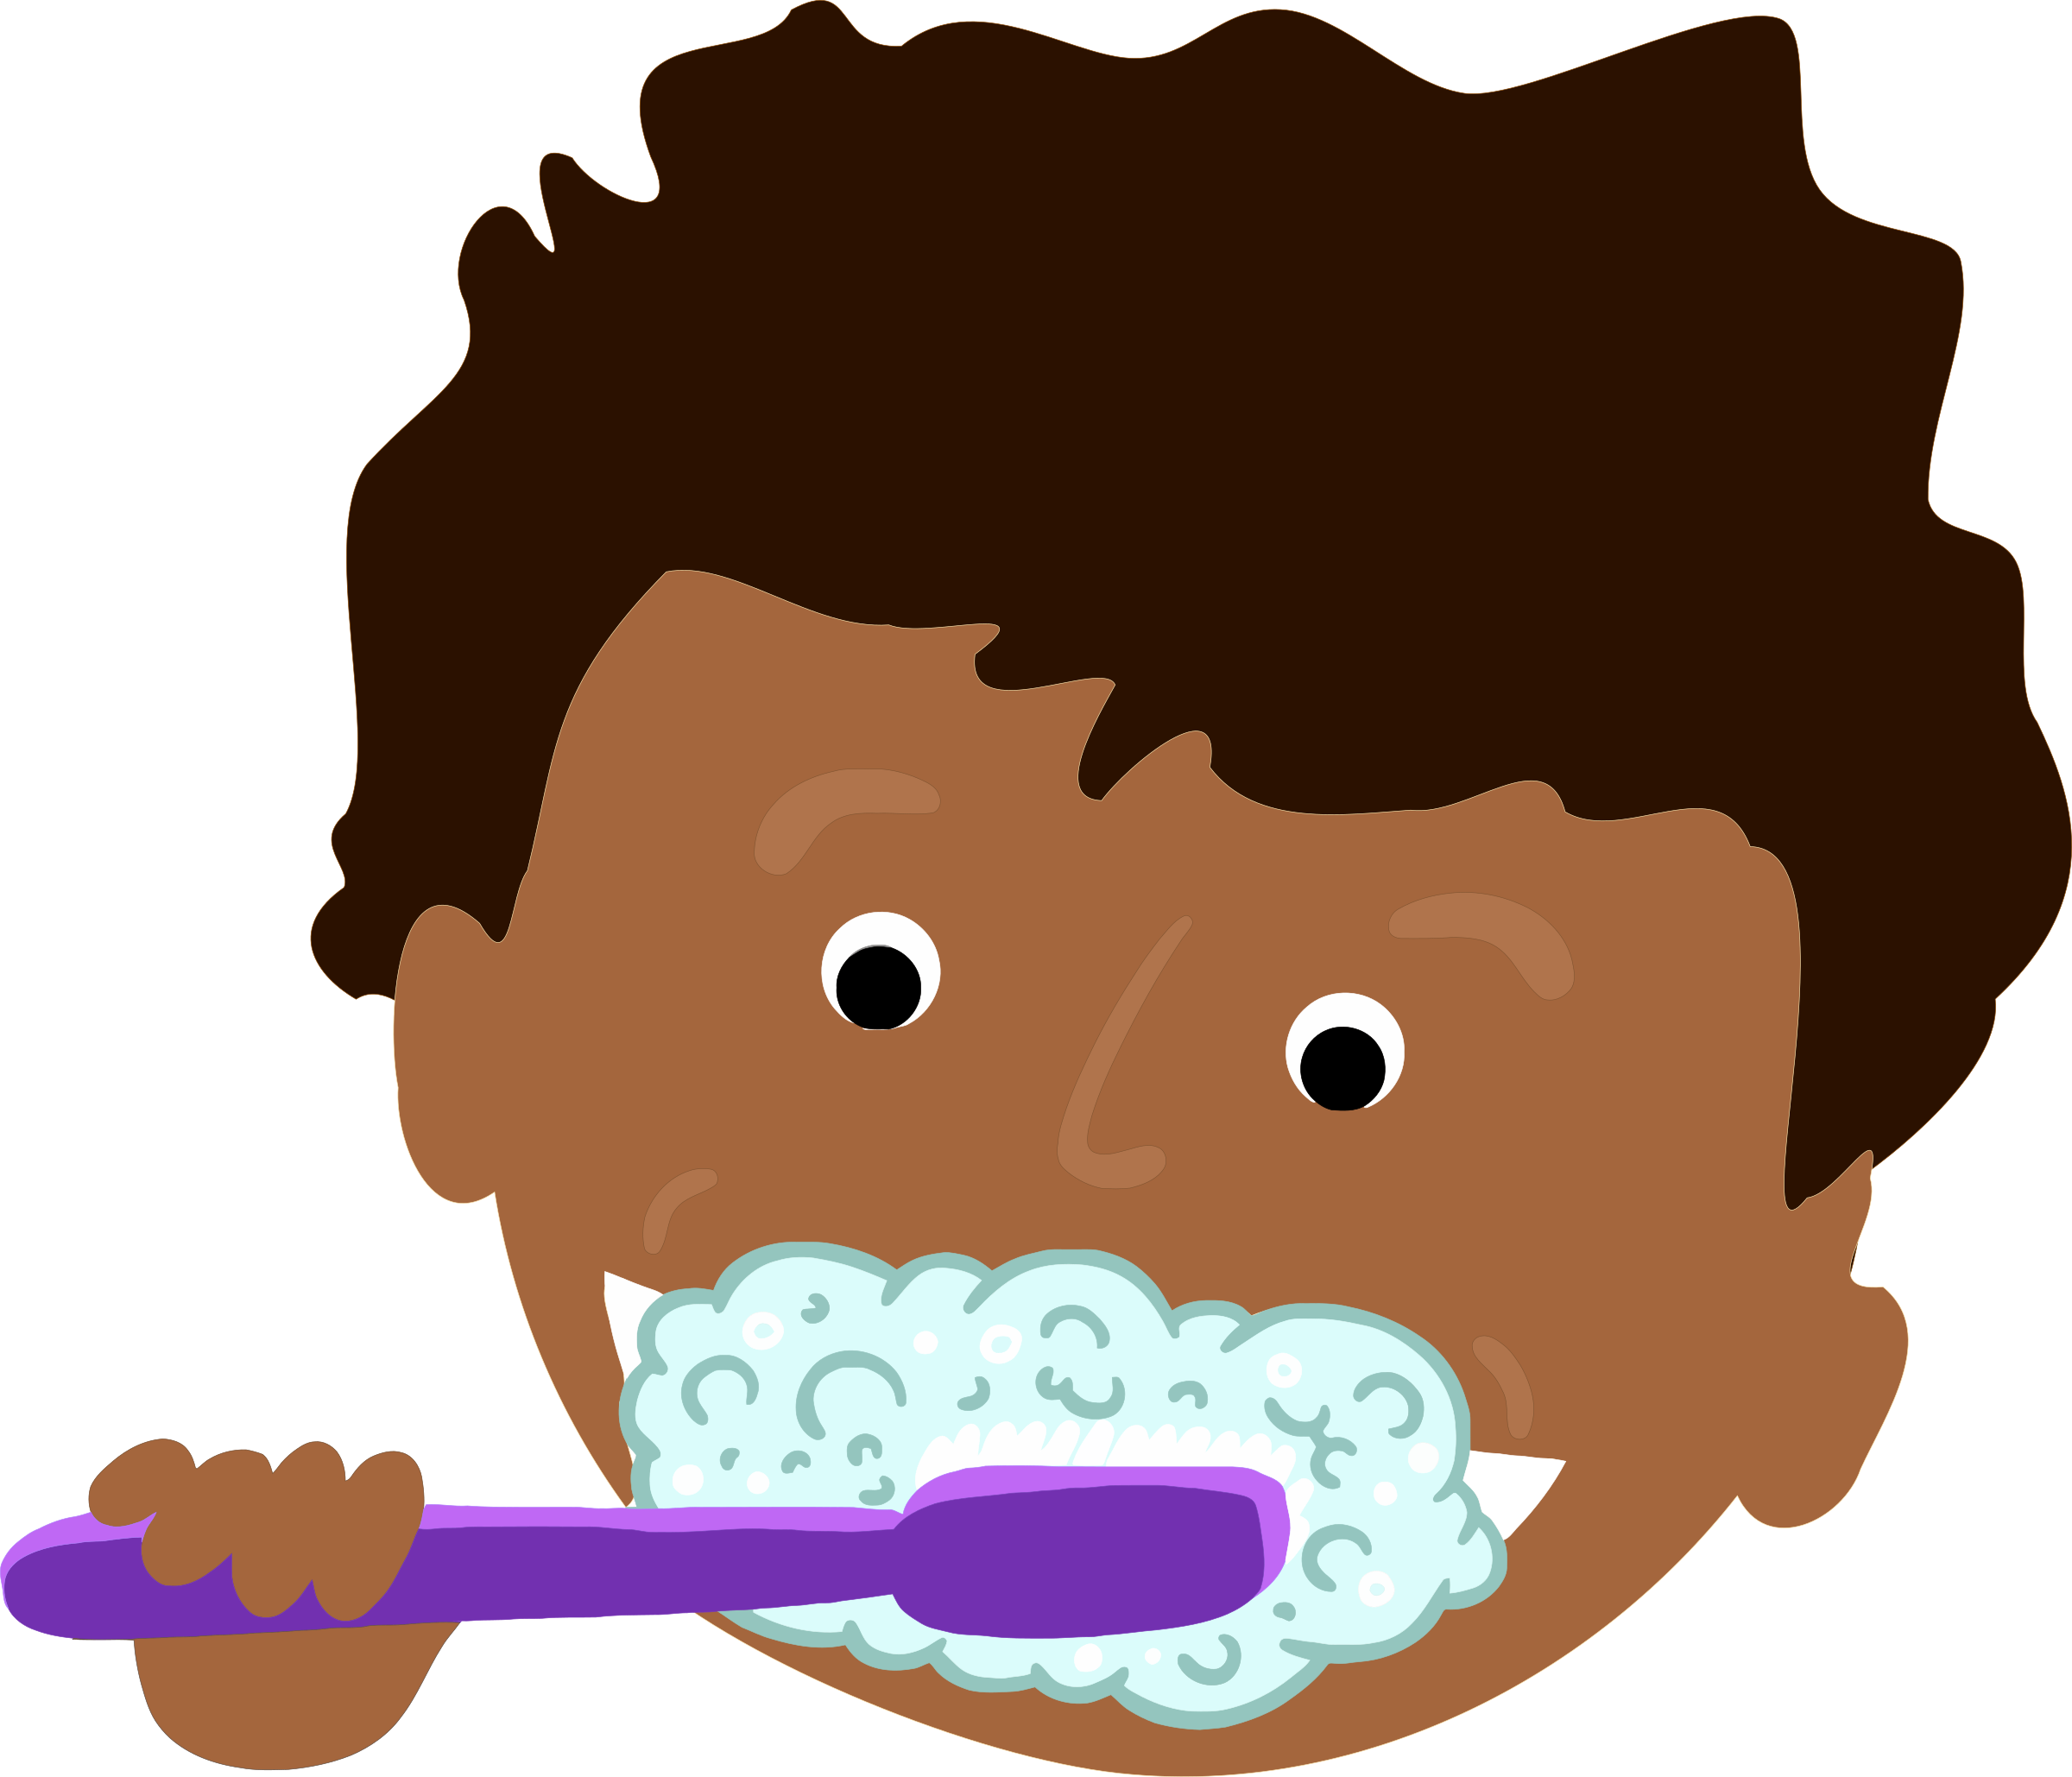 Children teeth clipart picture royalty free African Kid Brushing Teeth by j4p4n | Multicultural images for K-16 ... picture royalty free